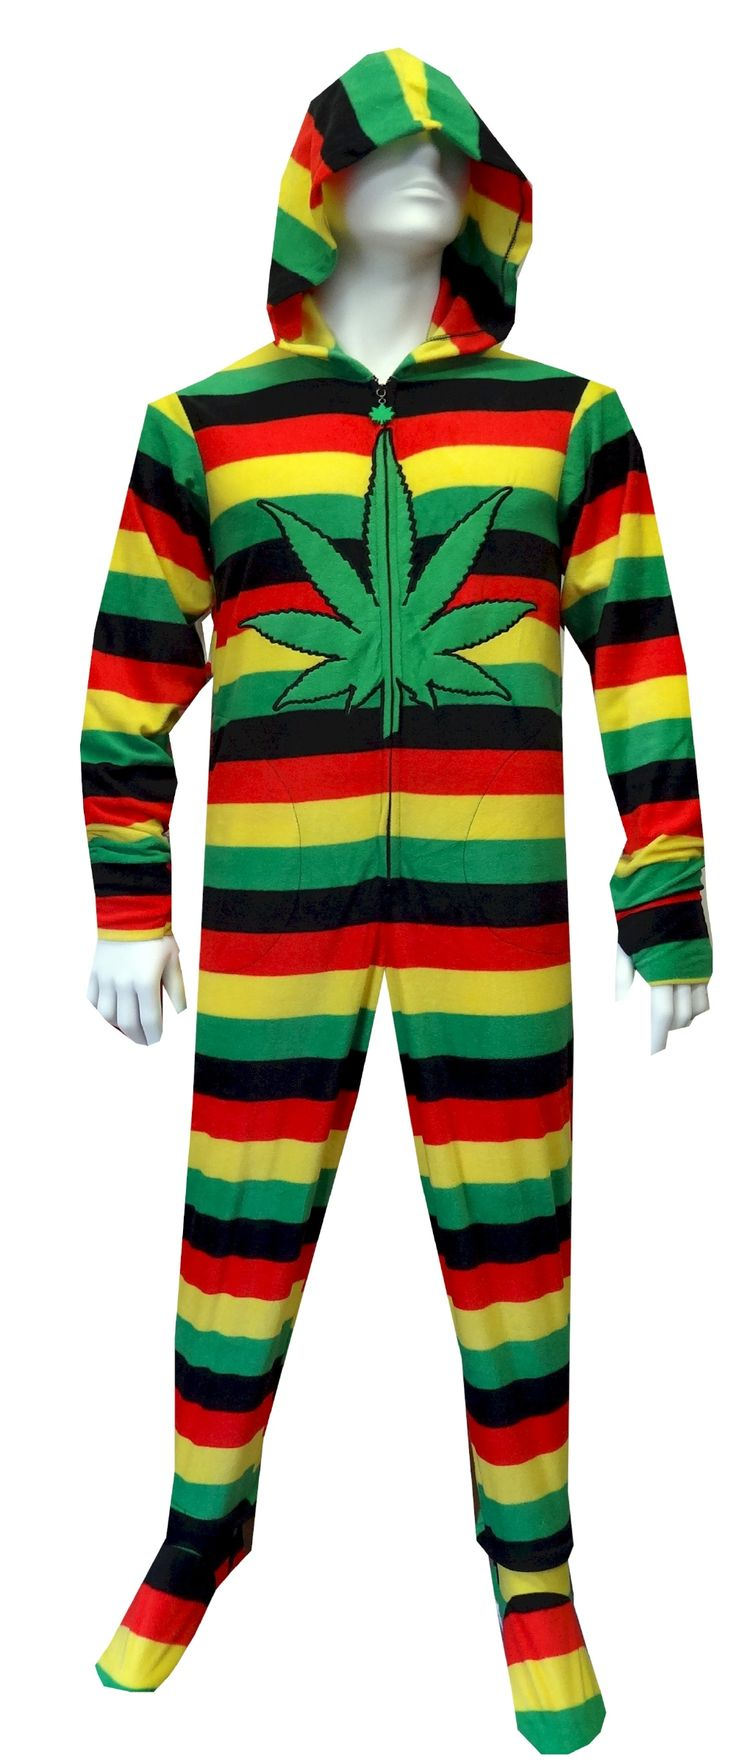 WebUndies.com Weedman Route 420 Adult Footie Onesie Pajamas with Hood